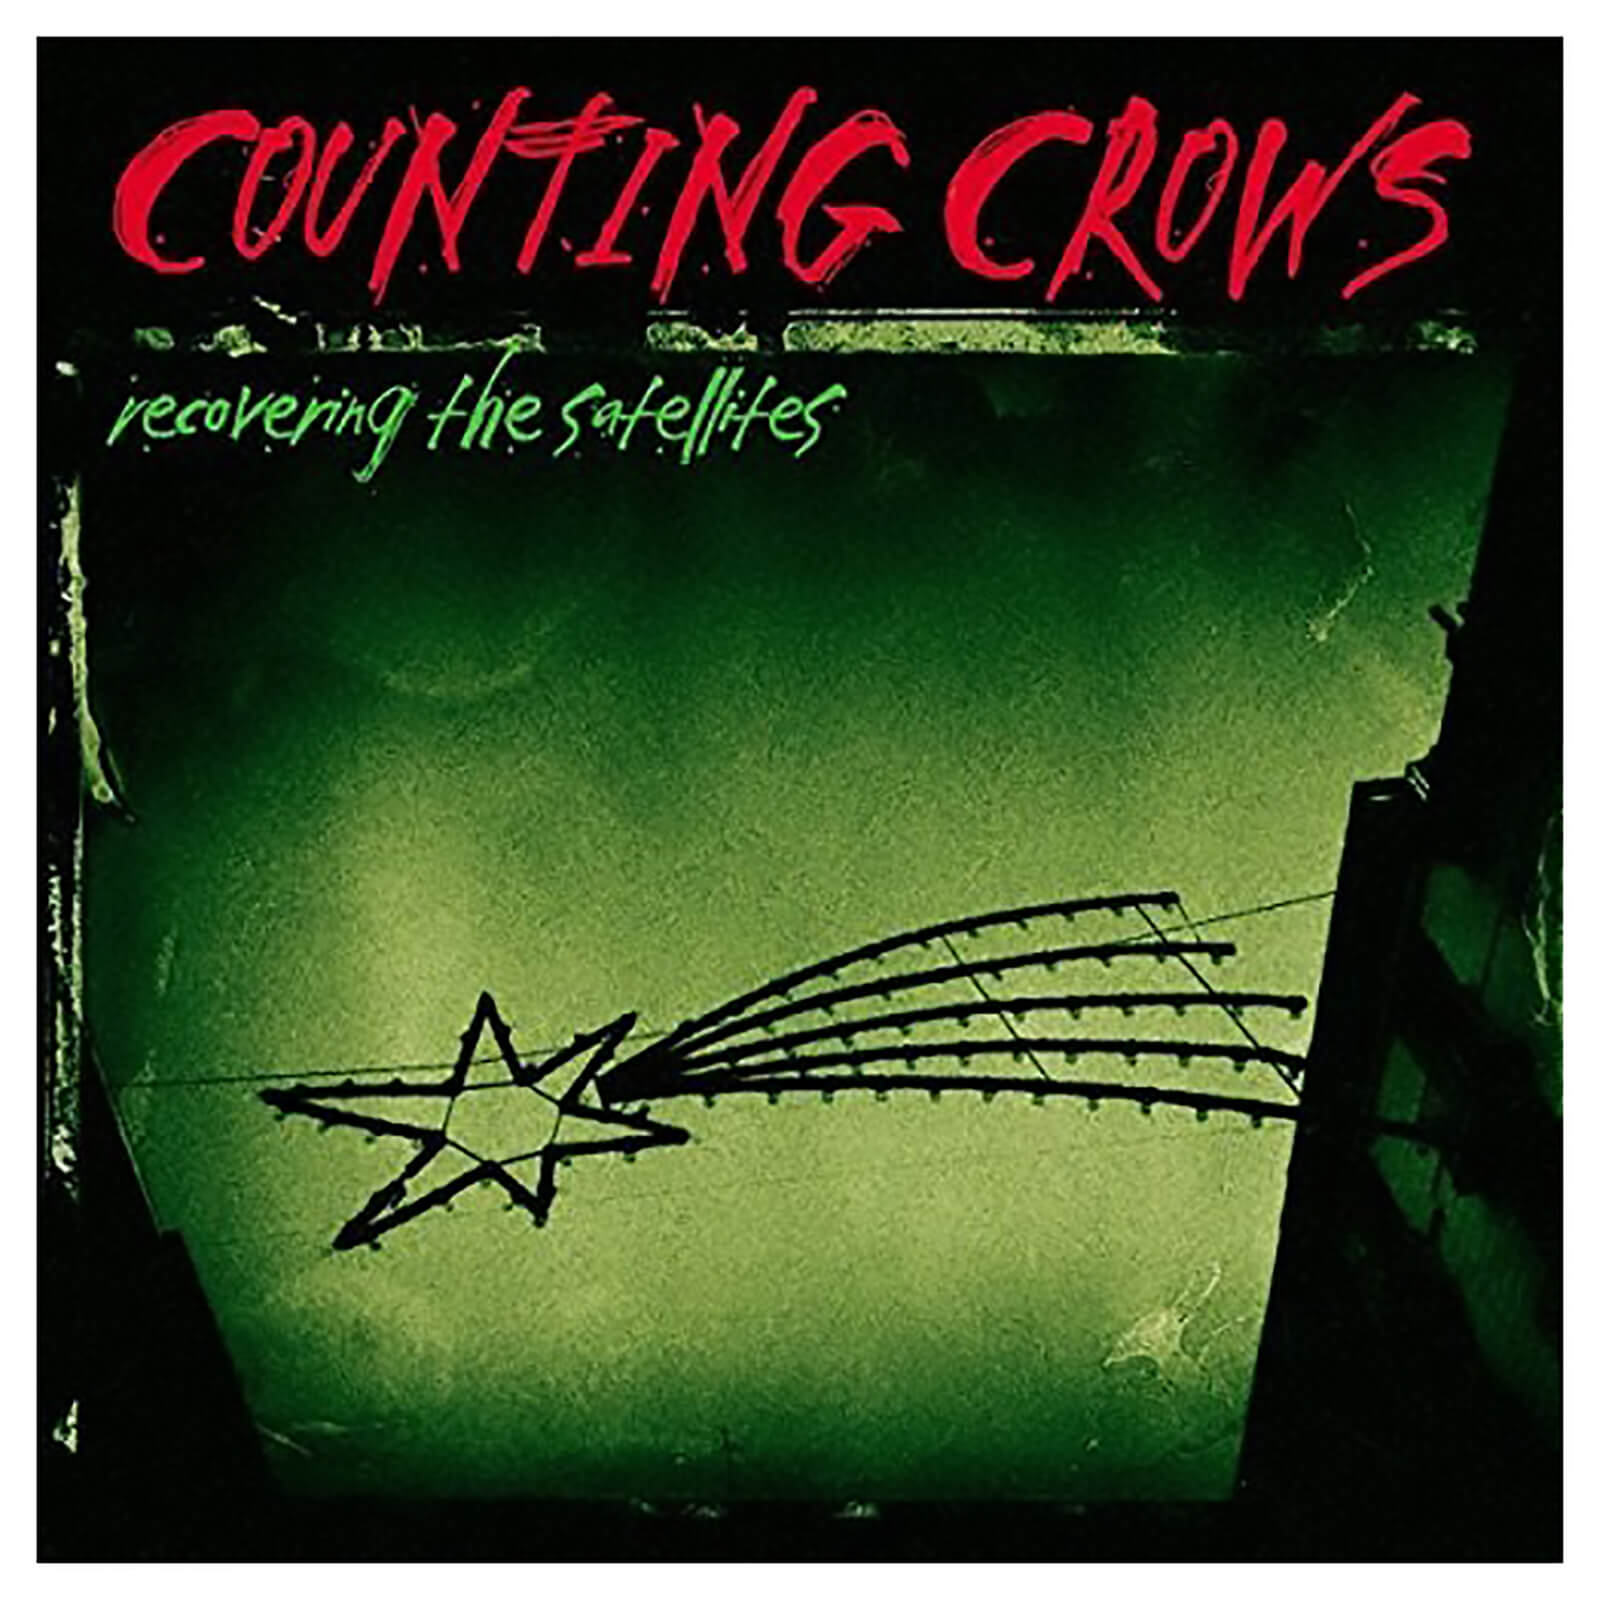 Counting Crows - Recovering The Satellites - Vinyl